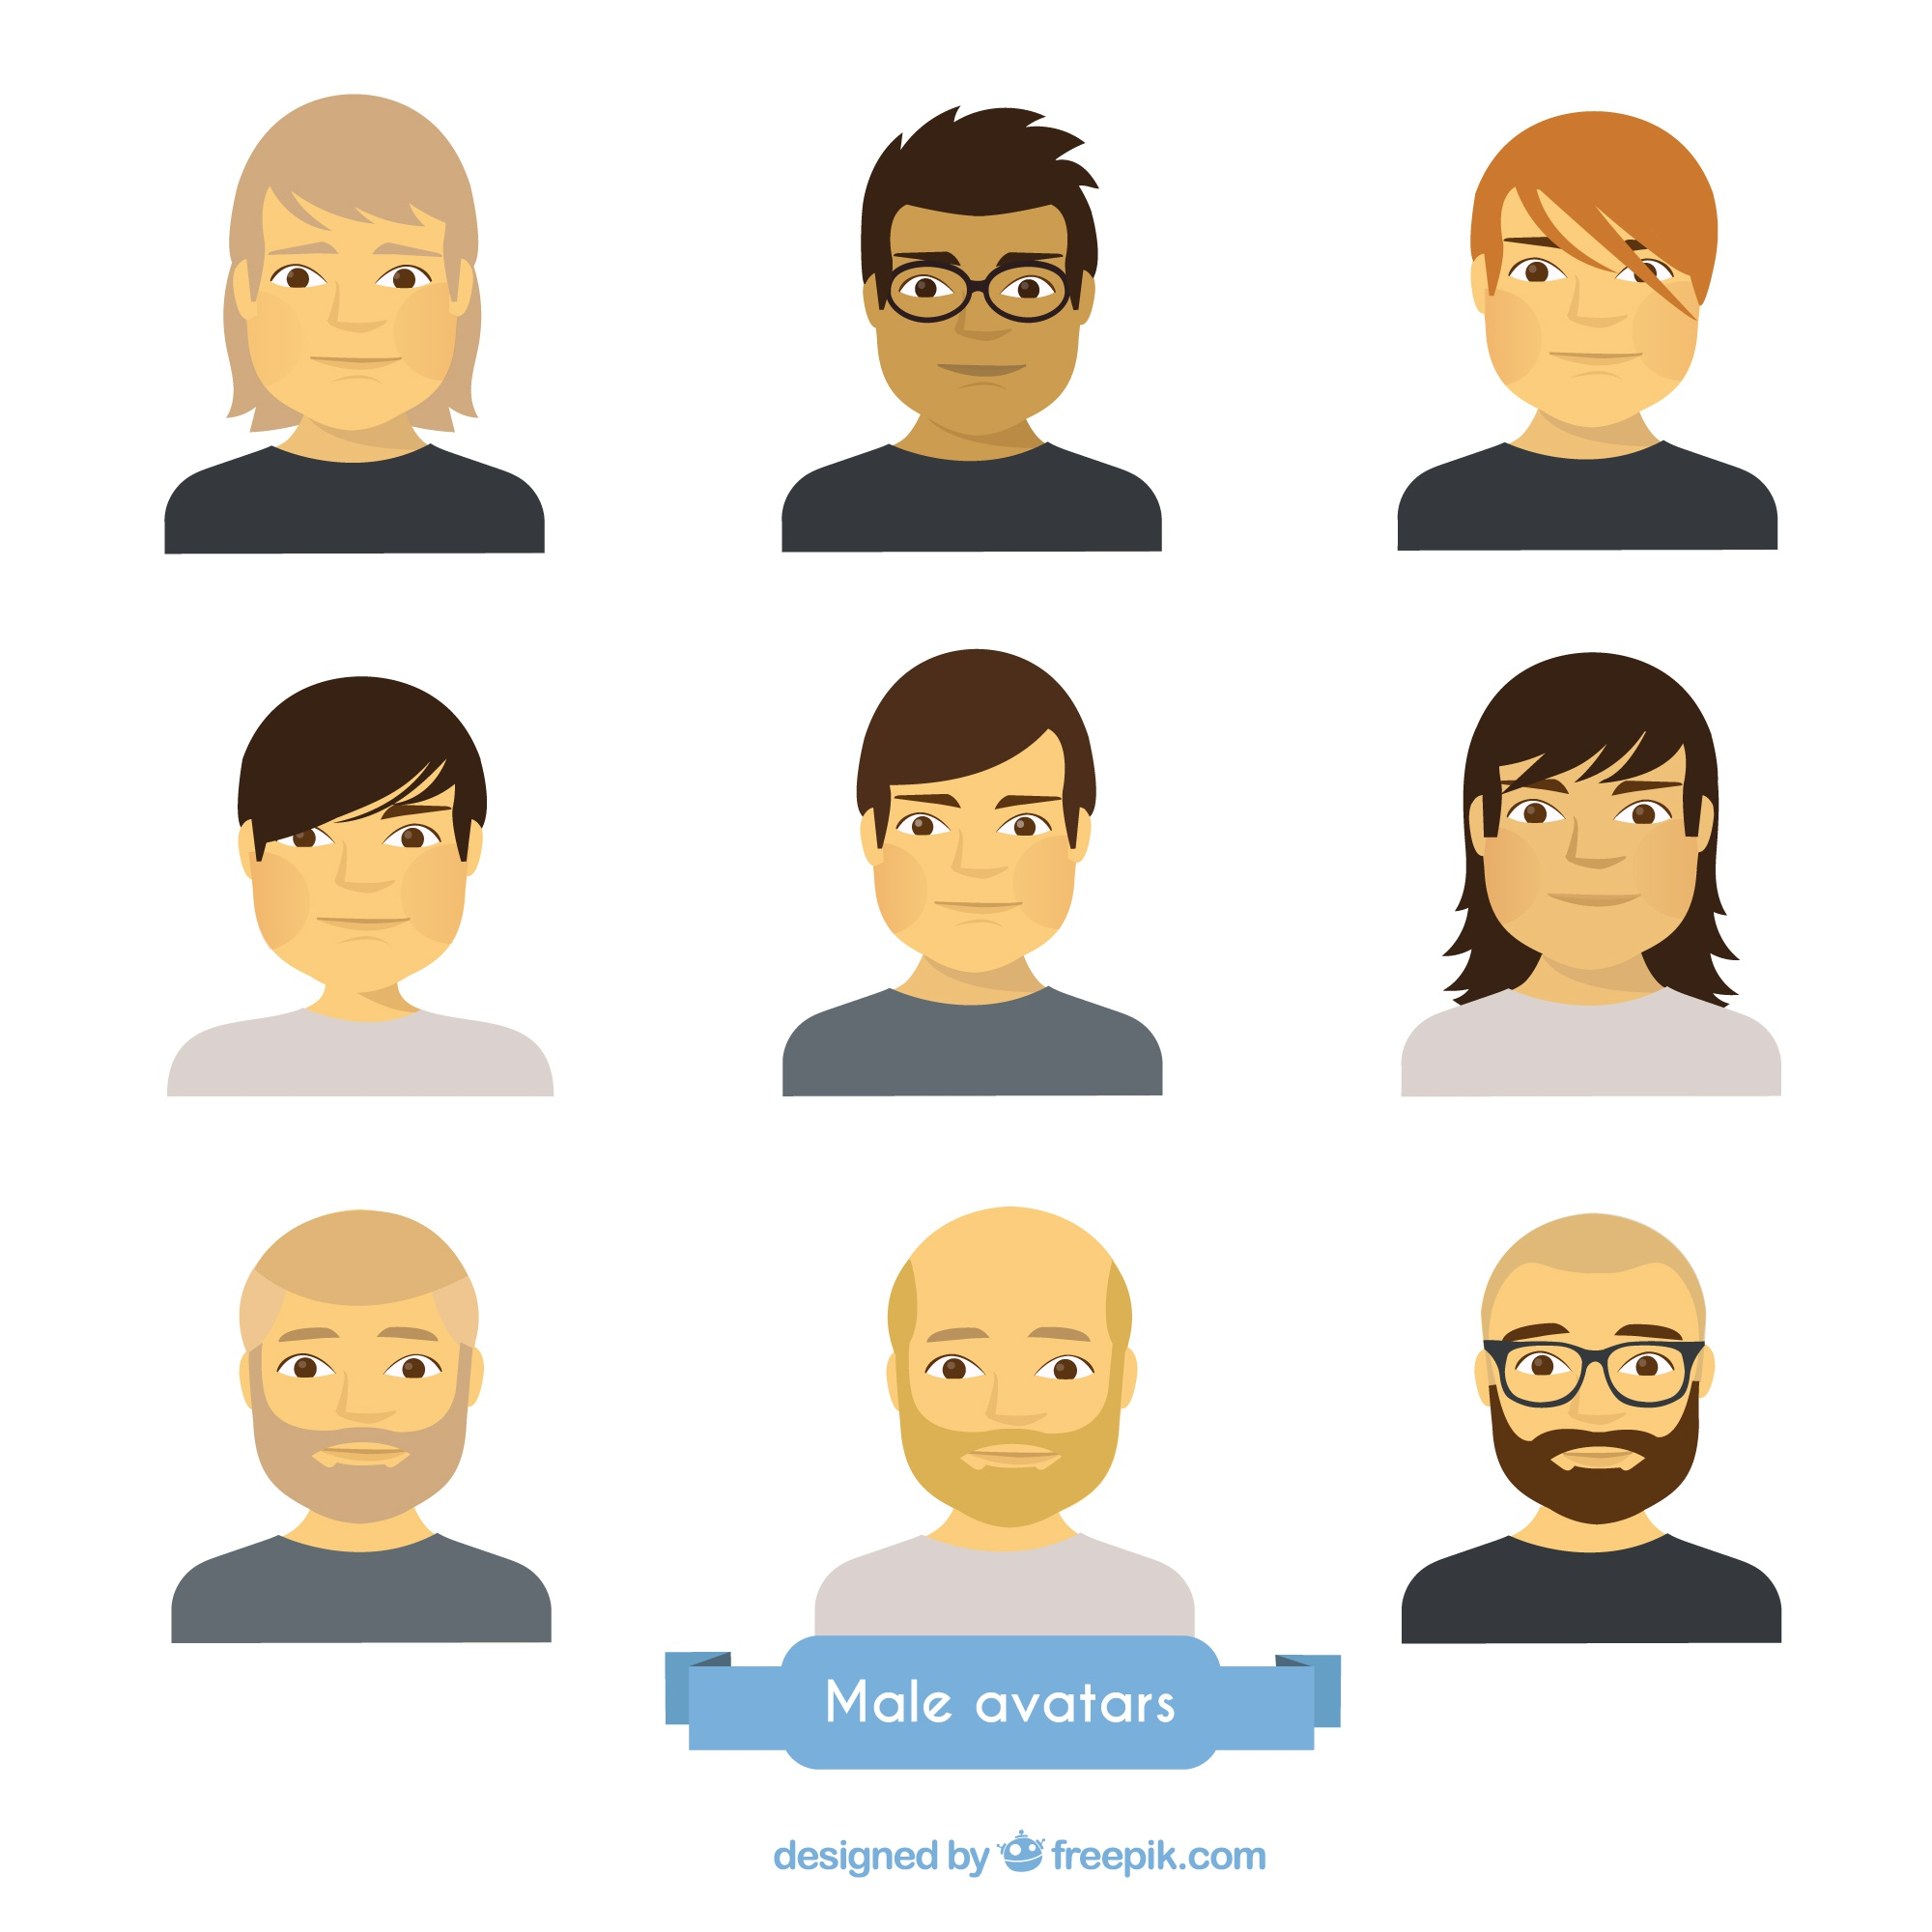 Male avatars collection